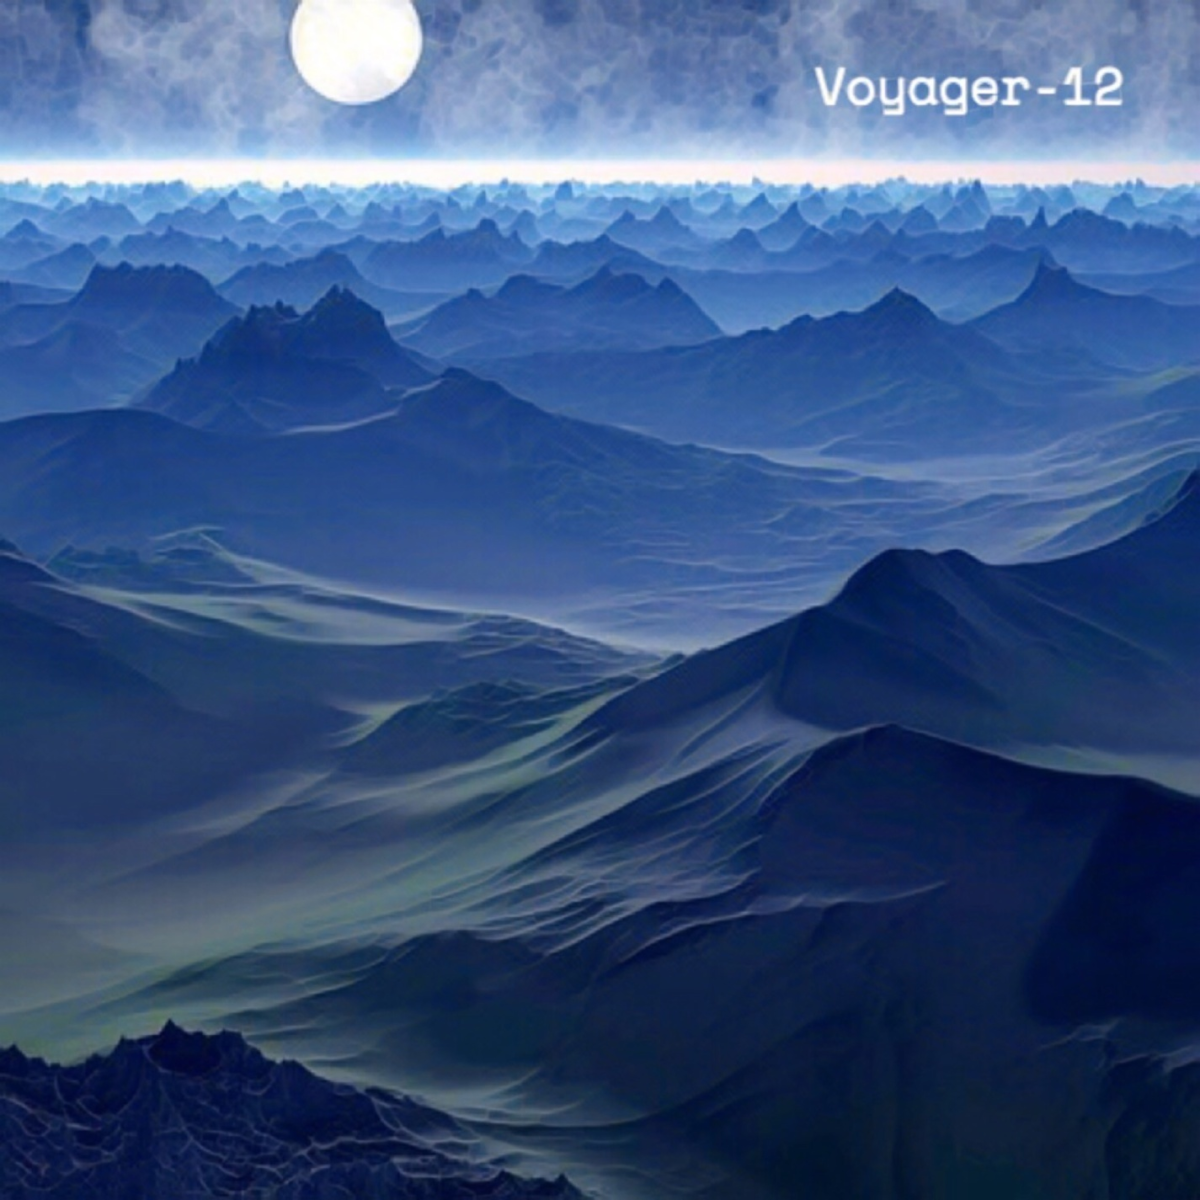 electronic-music-album-review-voyager-12-by-saros-fm